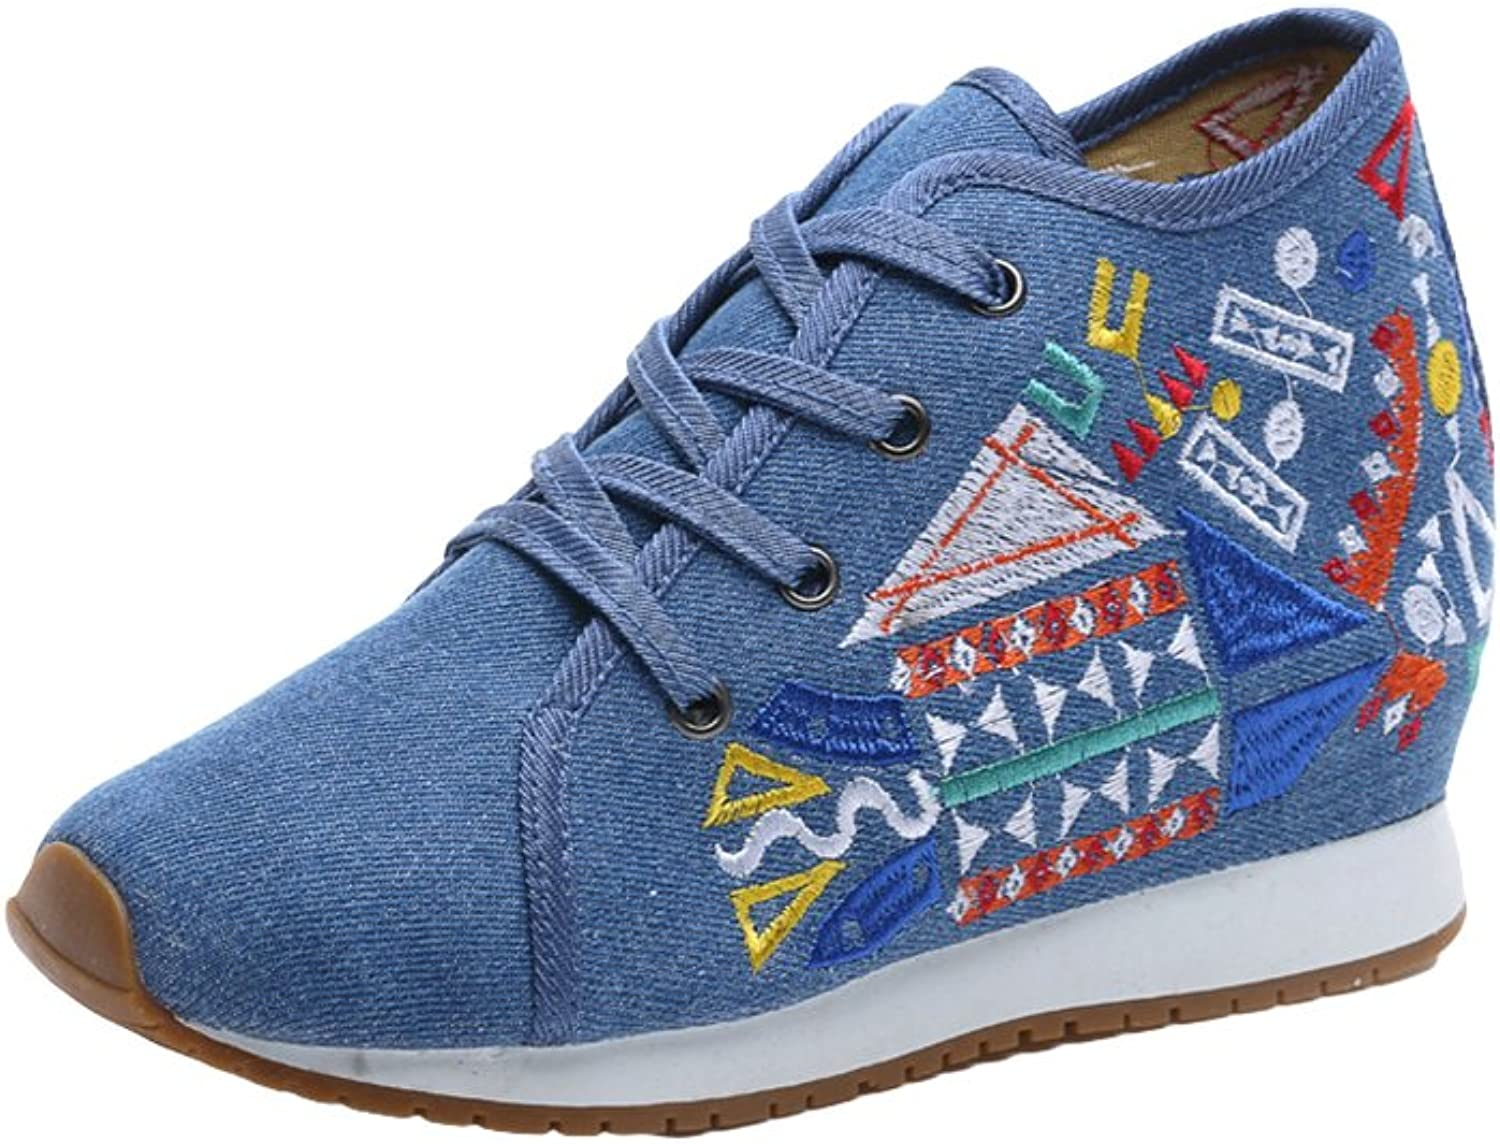 AvaCostume Womens Geometric Pattern Embroidery Lace-up Fashion Sneakers